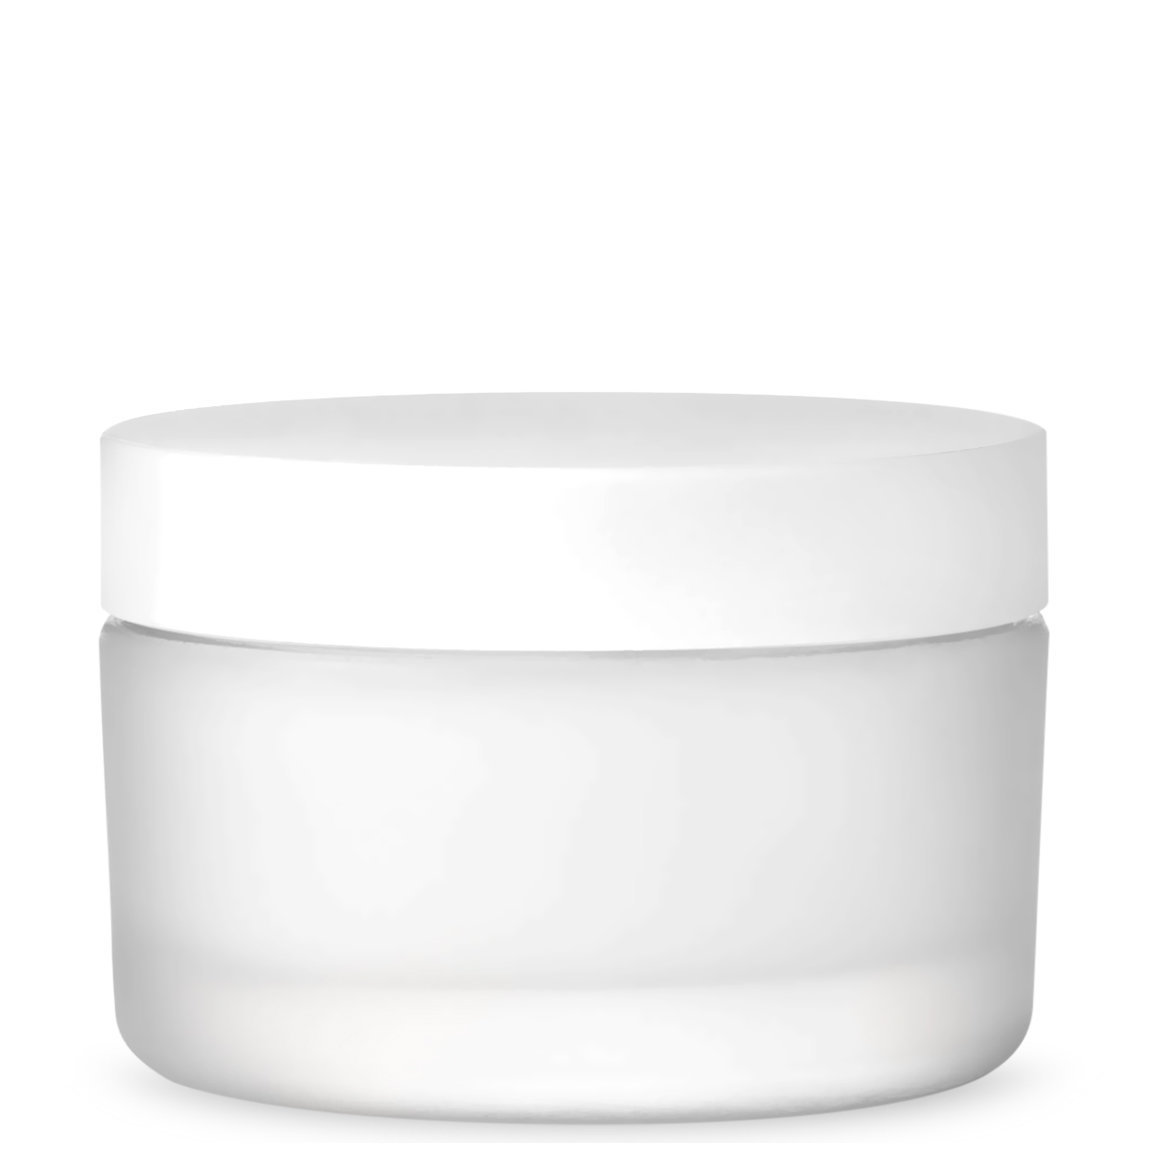 rms beauty Raw Coconut Cream 2.5 oz alternative view 1.